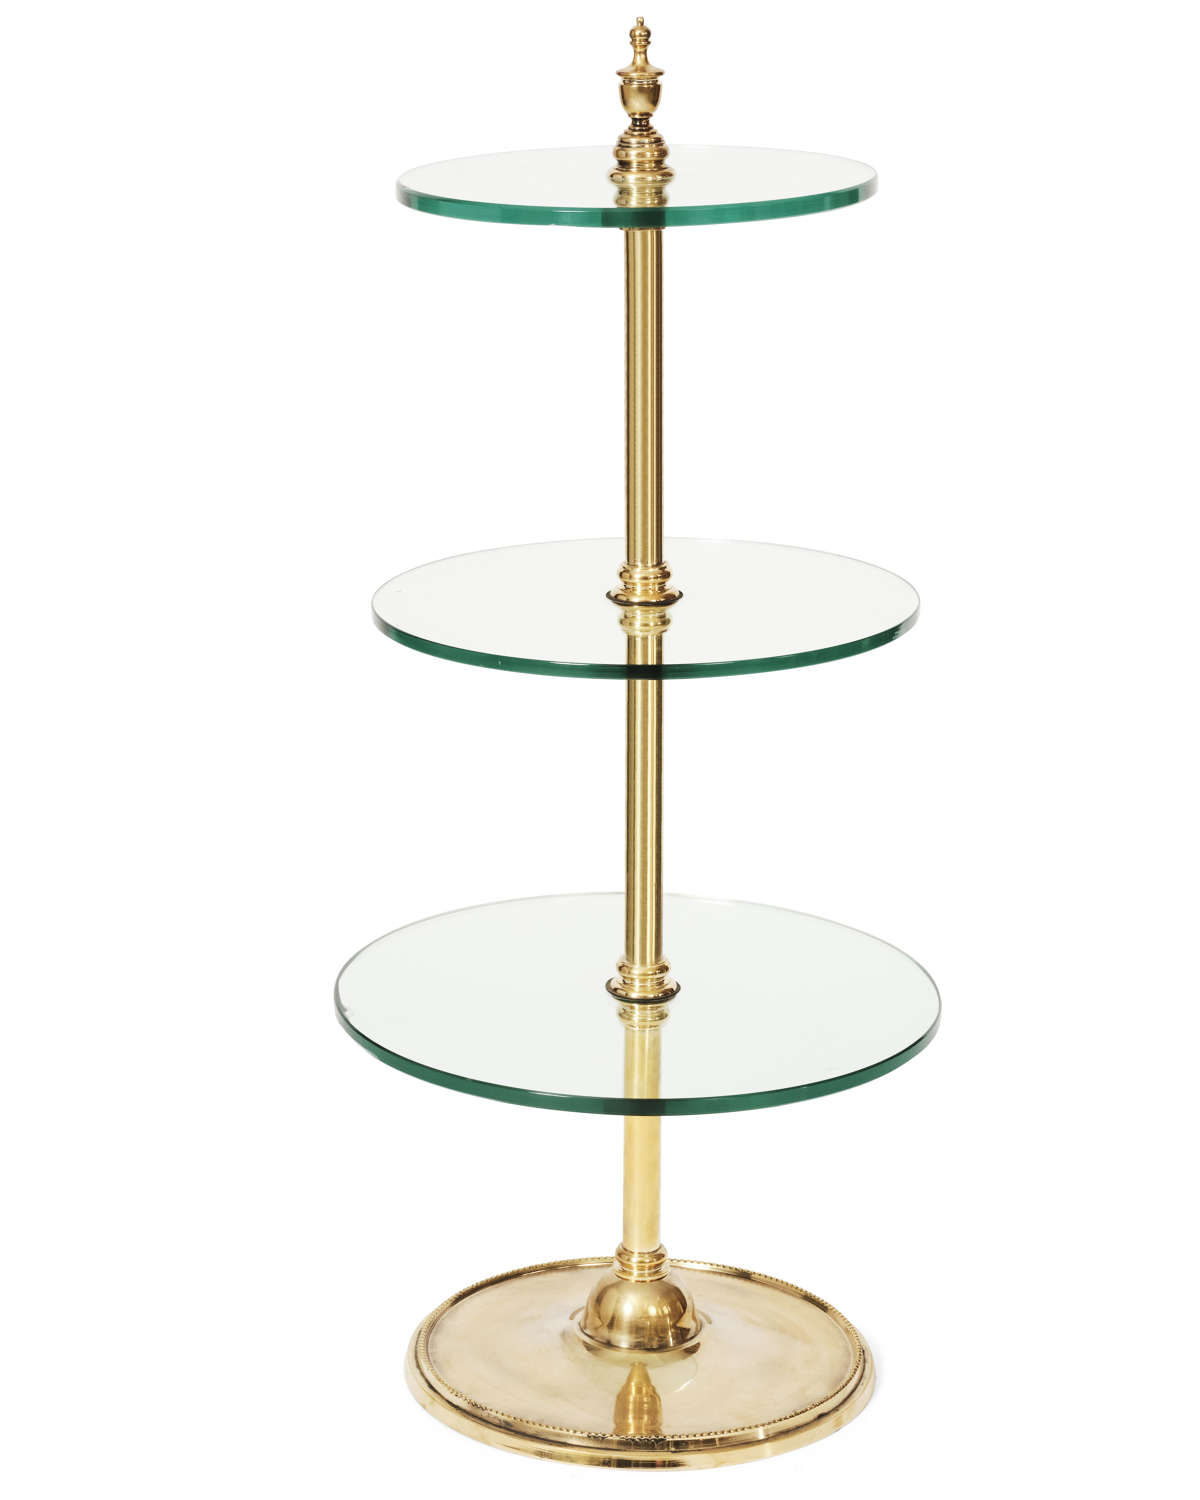 Antique brass cake stand